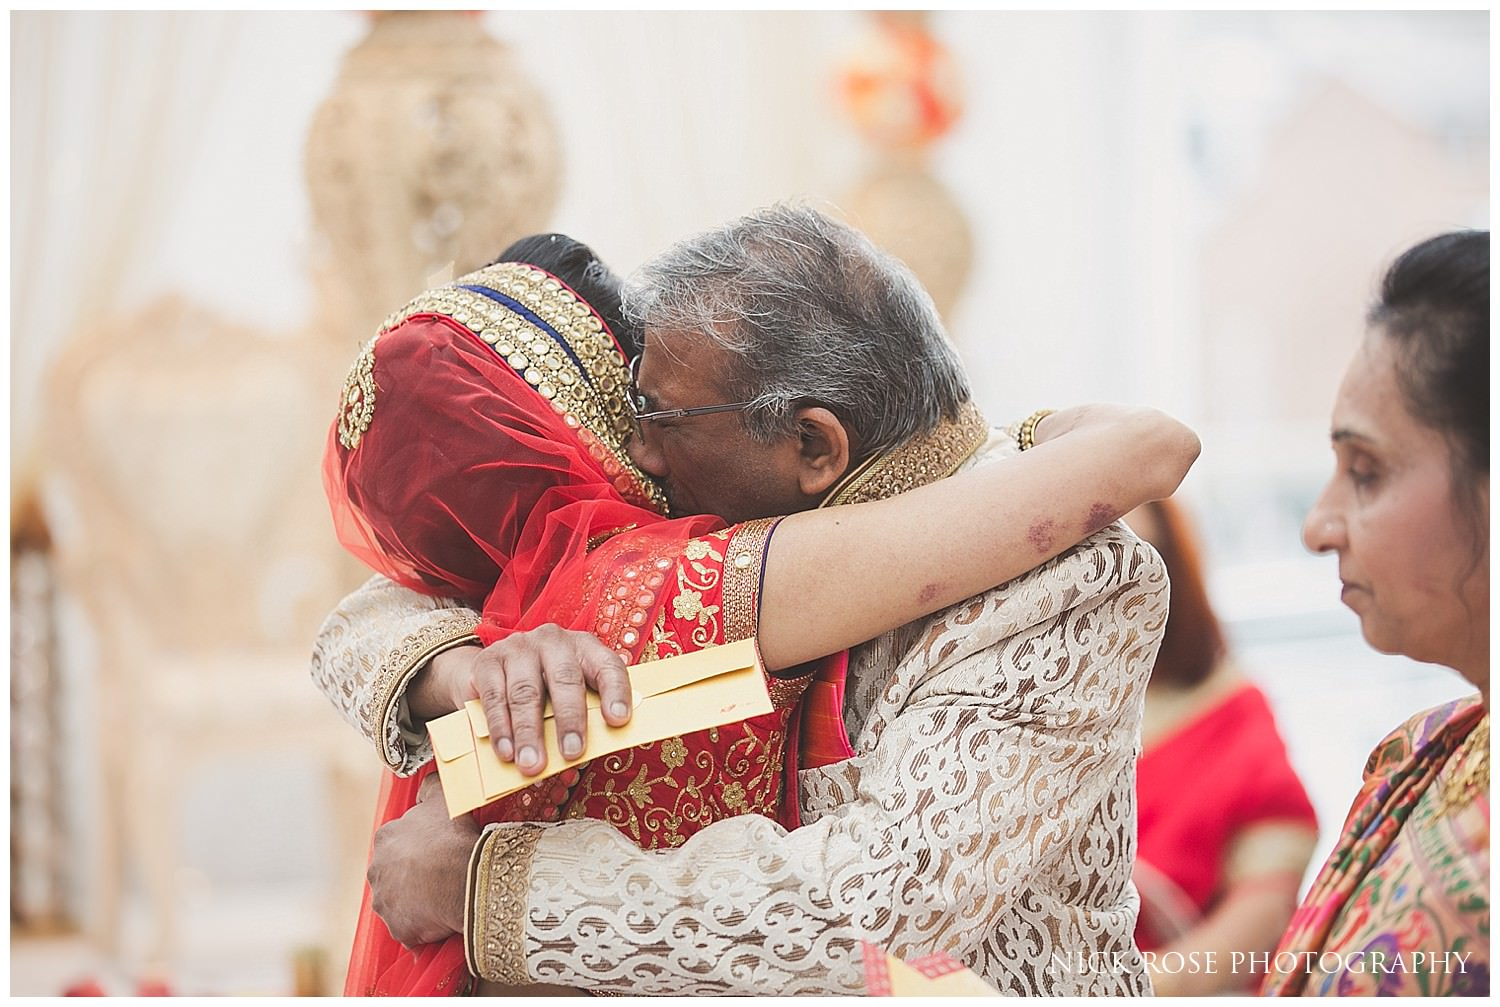 Brides father and bride's emotional farewell during the Hindu wedding viddai at East Wintergarden in London